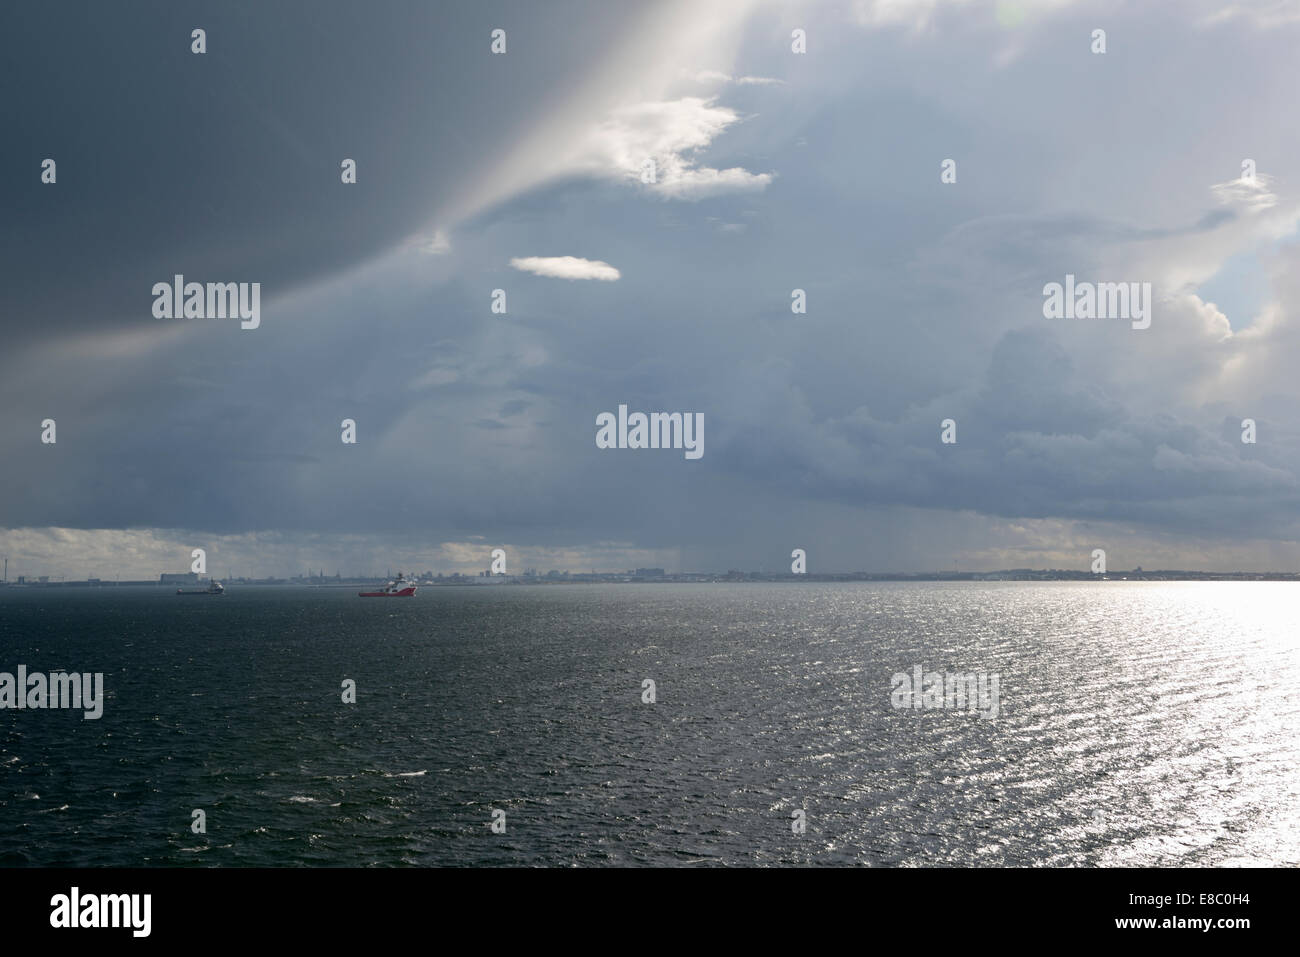 Baltic Sea Squall Line, View from Copenhagen Ferry to Oslo, Norway 140818_62376 - Stock Image